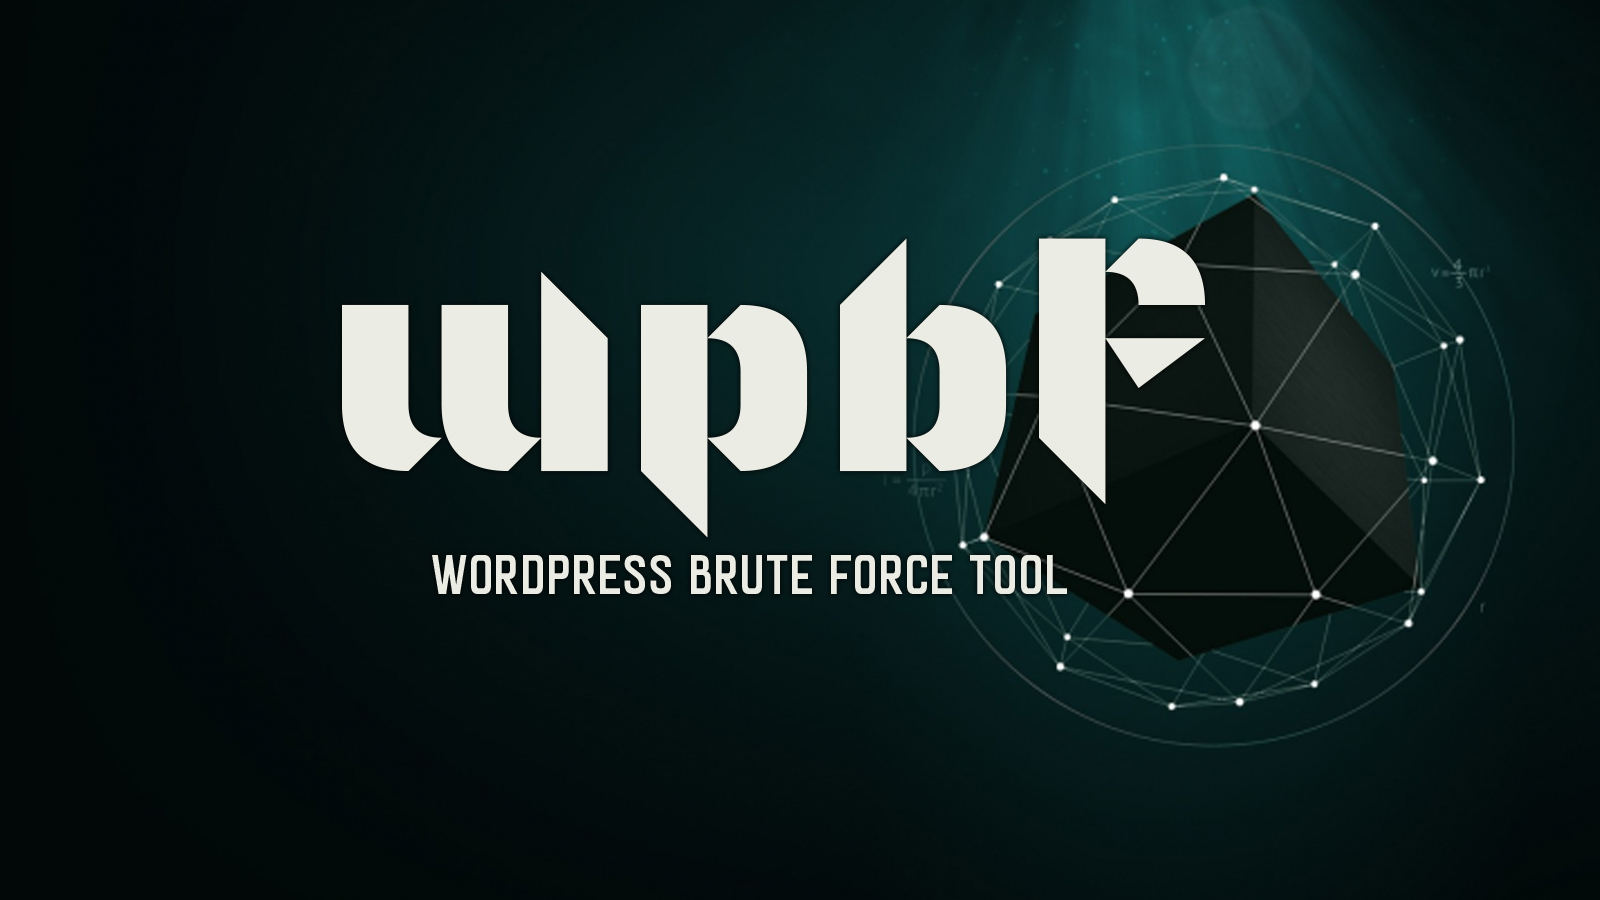 wpbf -  WordPress Brute Force Tool